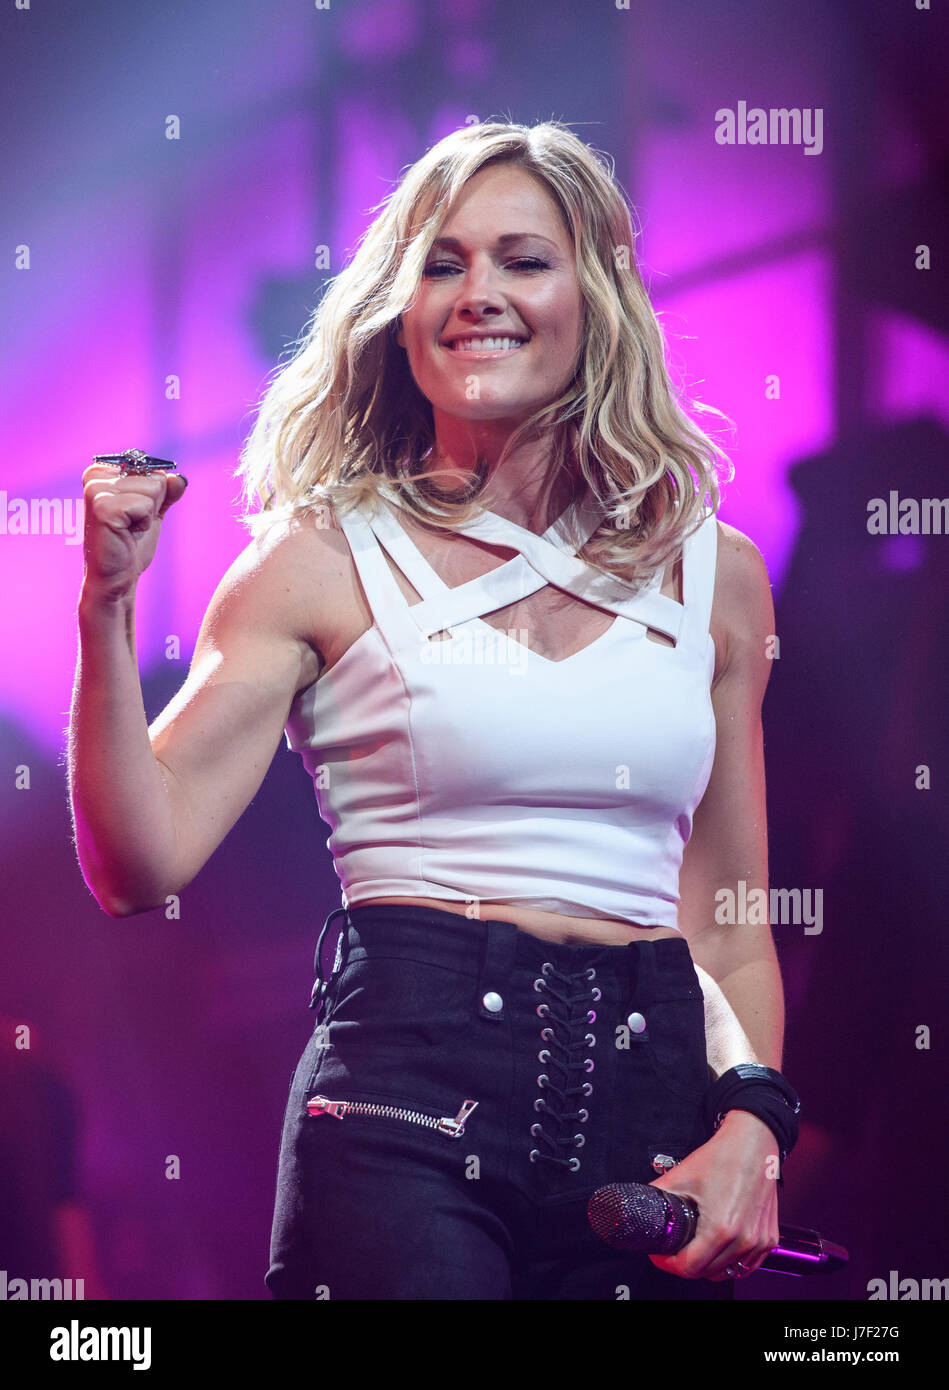 Munich Germany 24th May 2017 Exclusive German Singer Helene Stock Photo Alamy